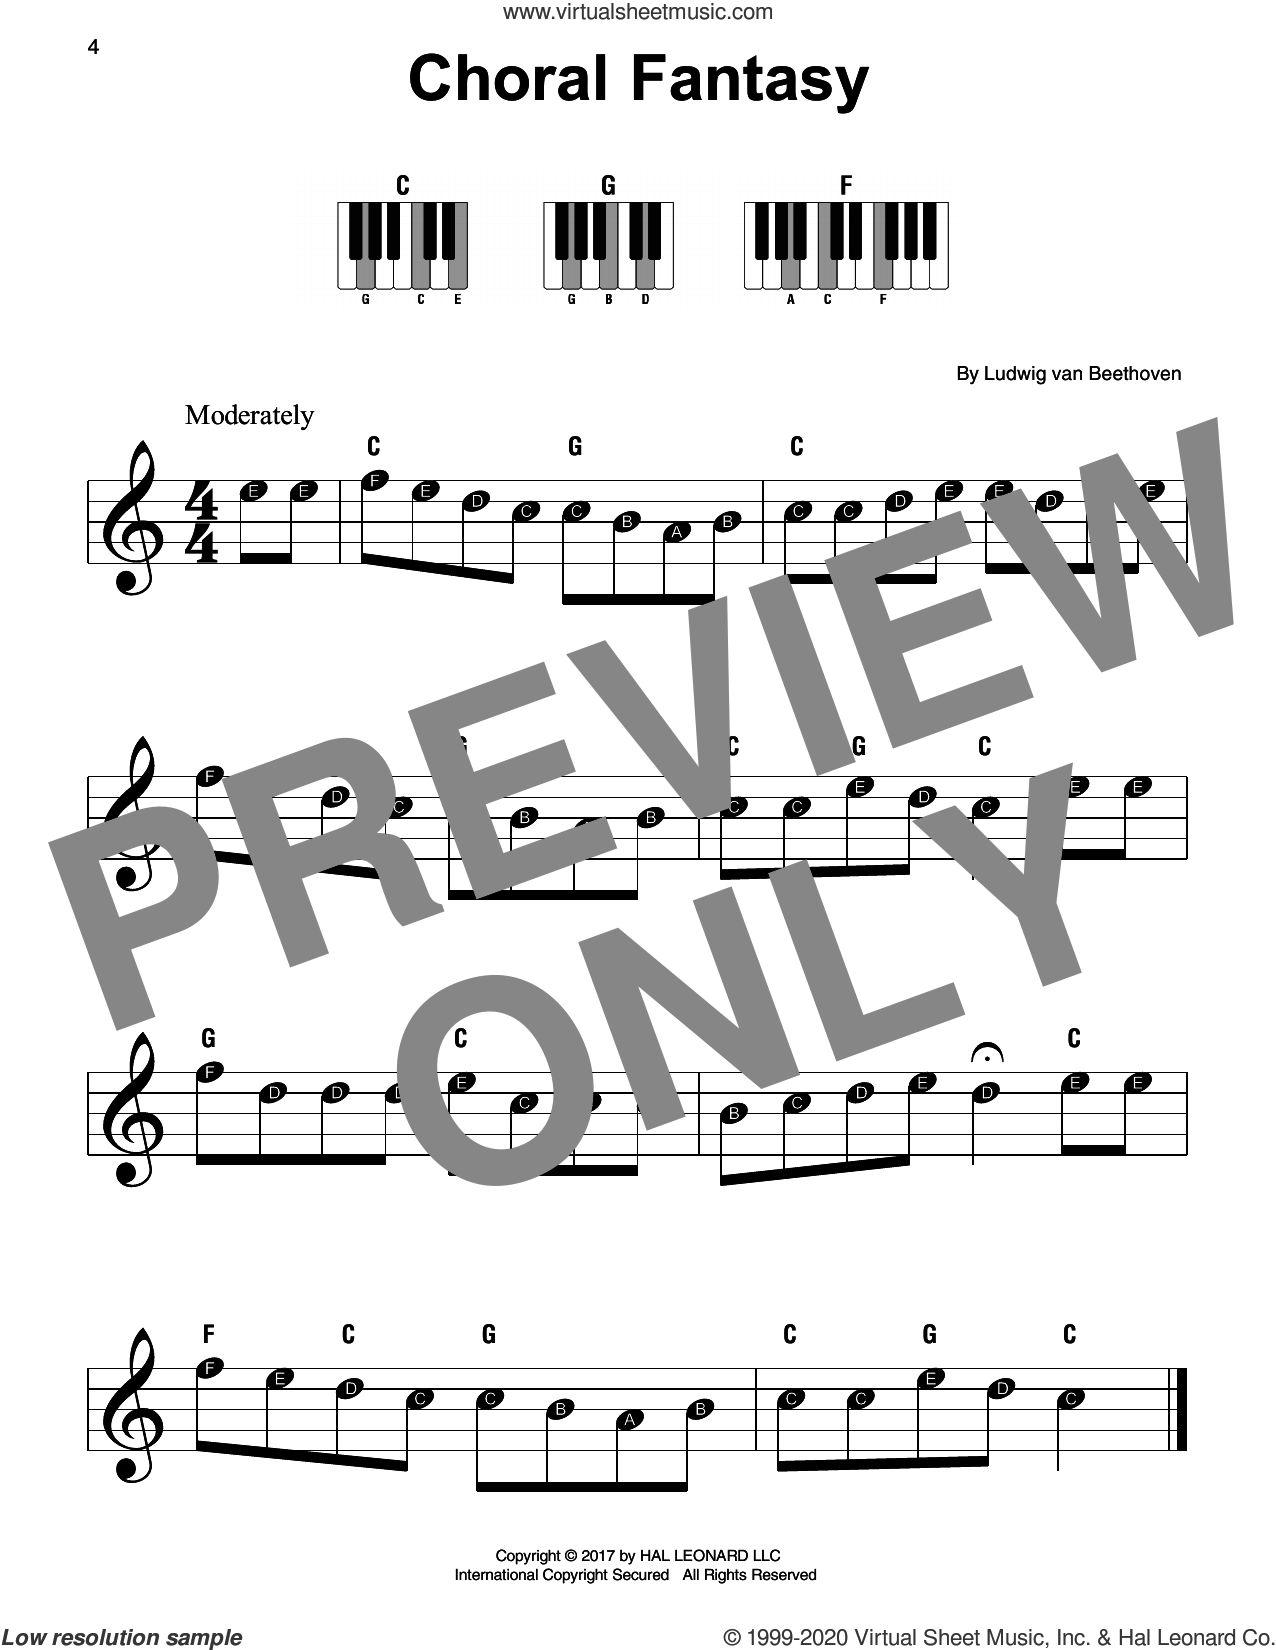 Choral Fantasy sheet music for piano solo by Ludwig van Beethoven, classical score, beginner skill level